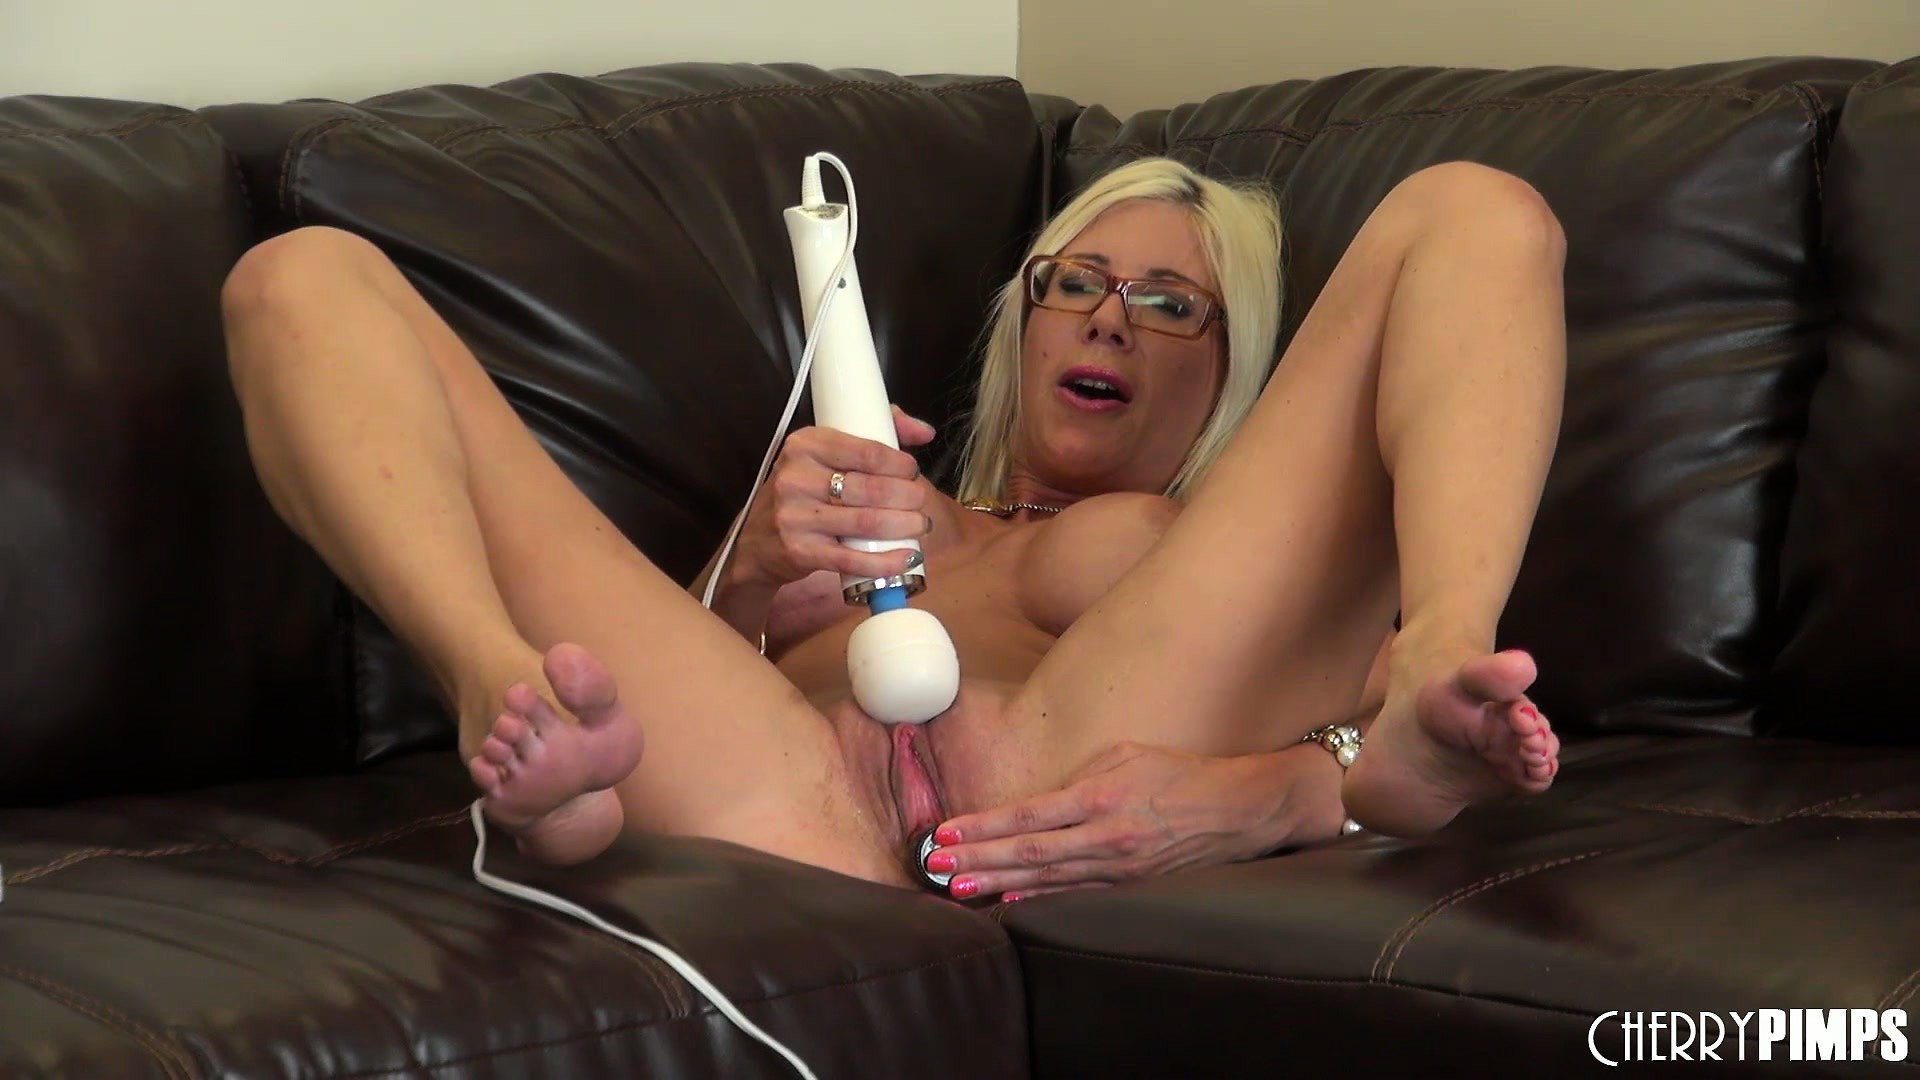 Porno Video of With A Vibrator Working Its Magic On Her Clit, Puma's Body Shudders With Delight